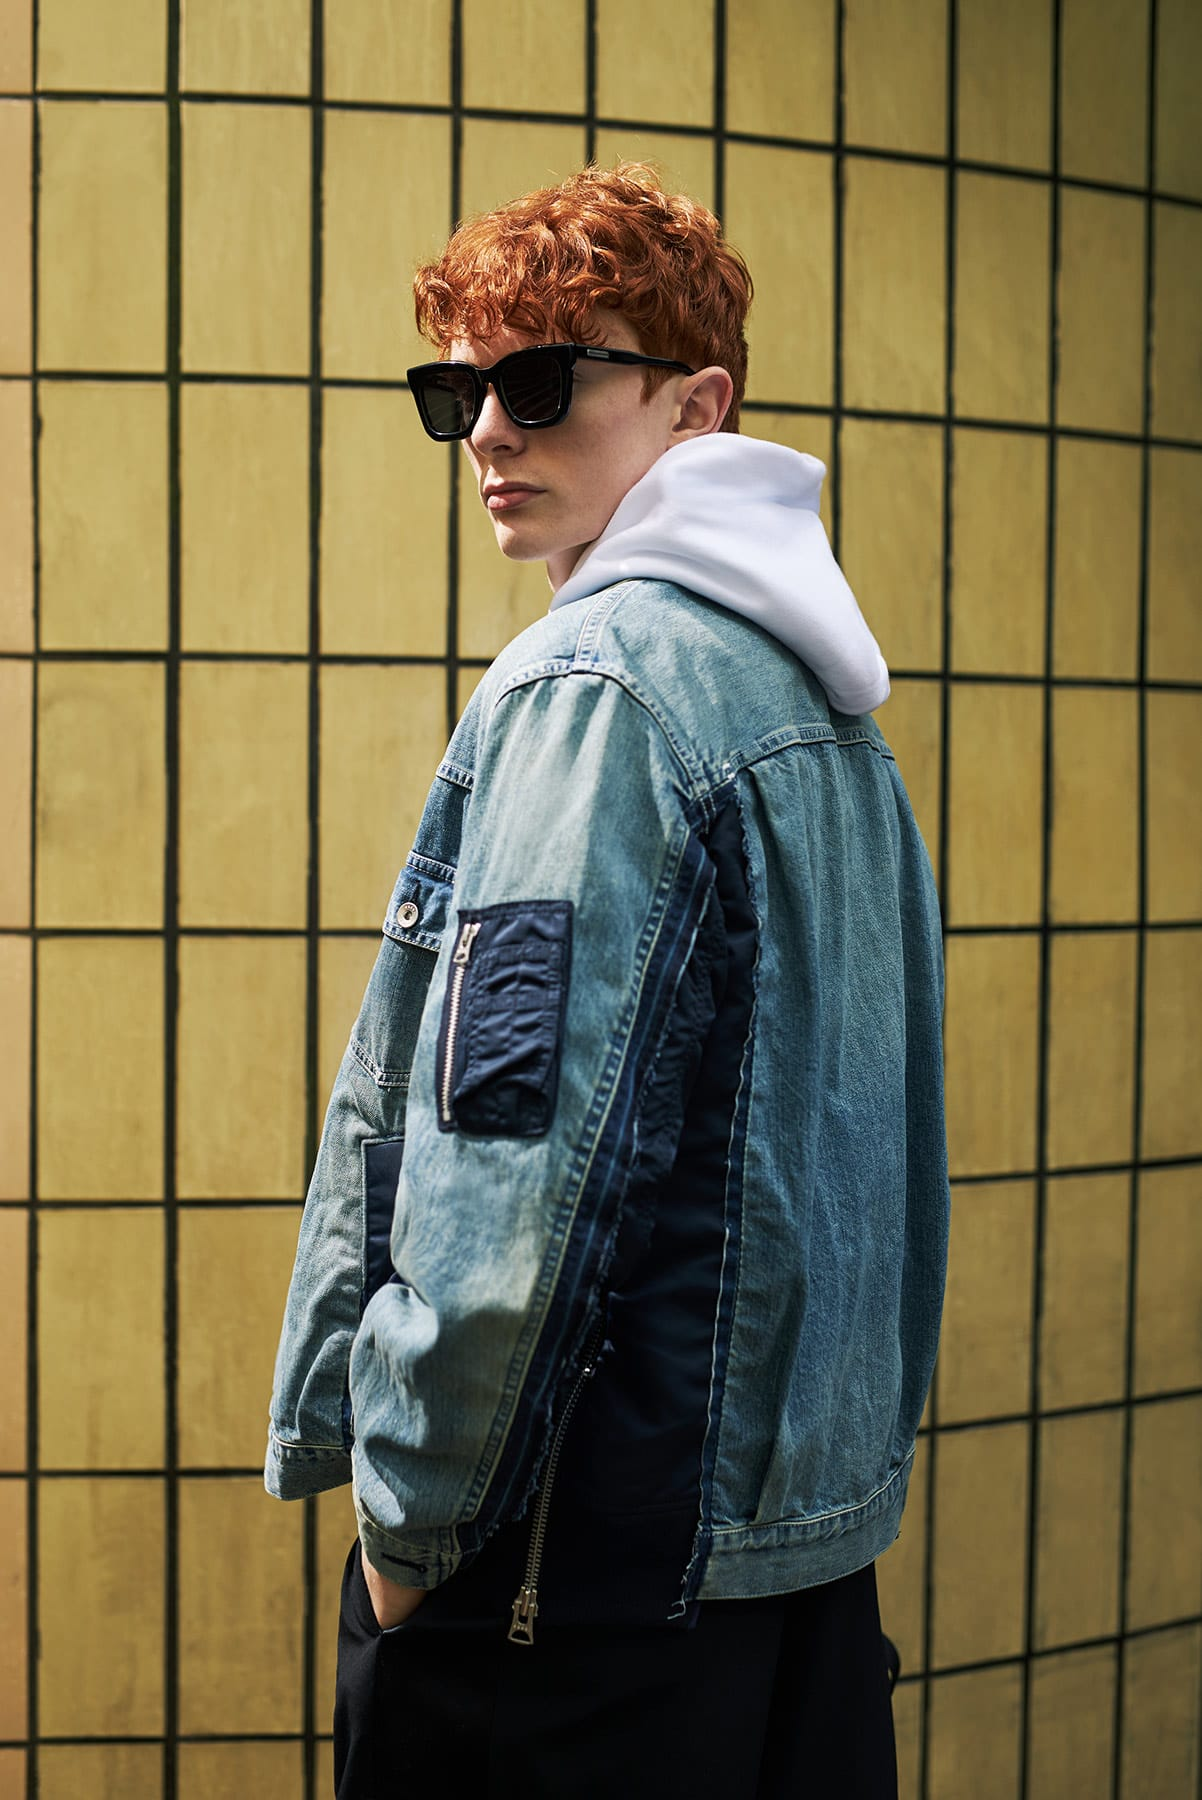 Sacai Denim MA-1 Bomber jacket for END. editorial